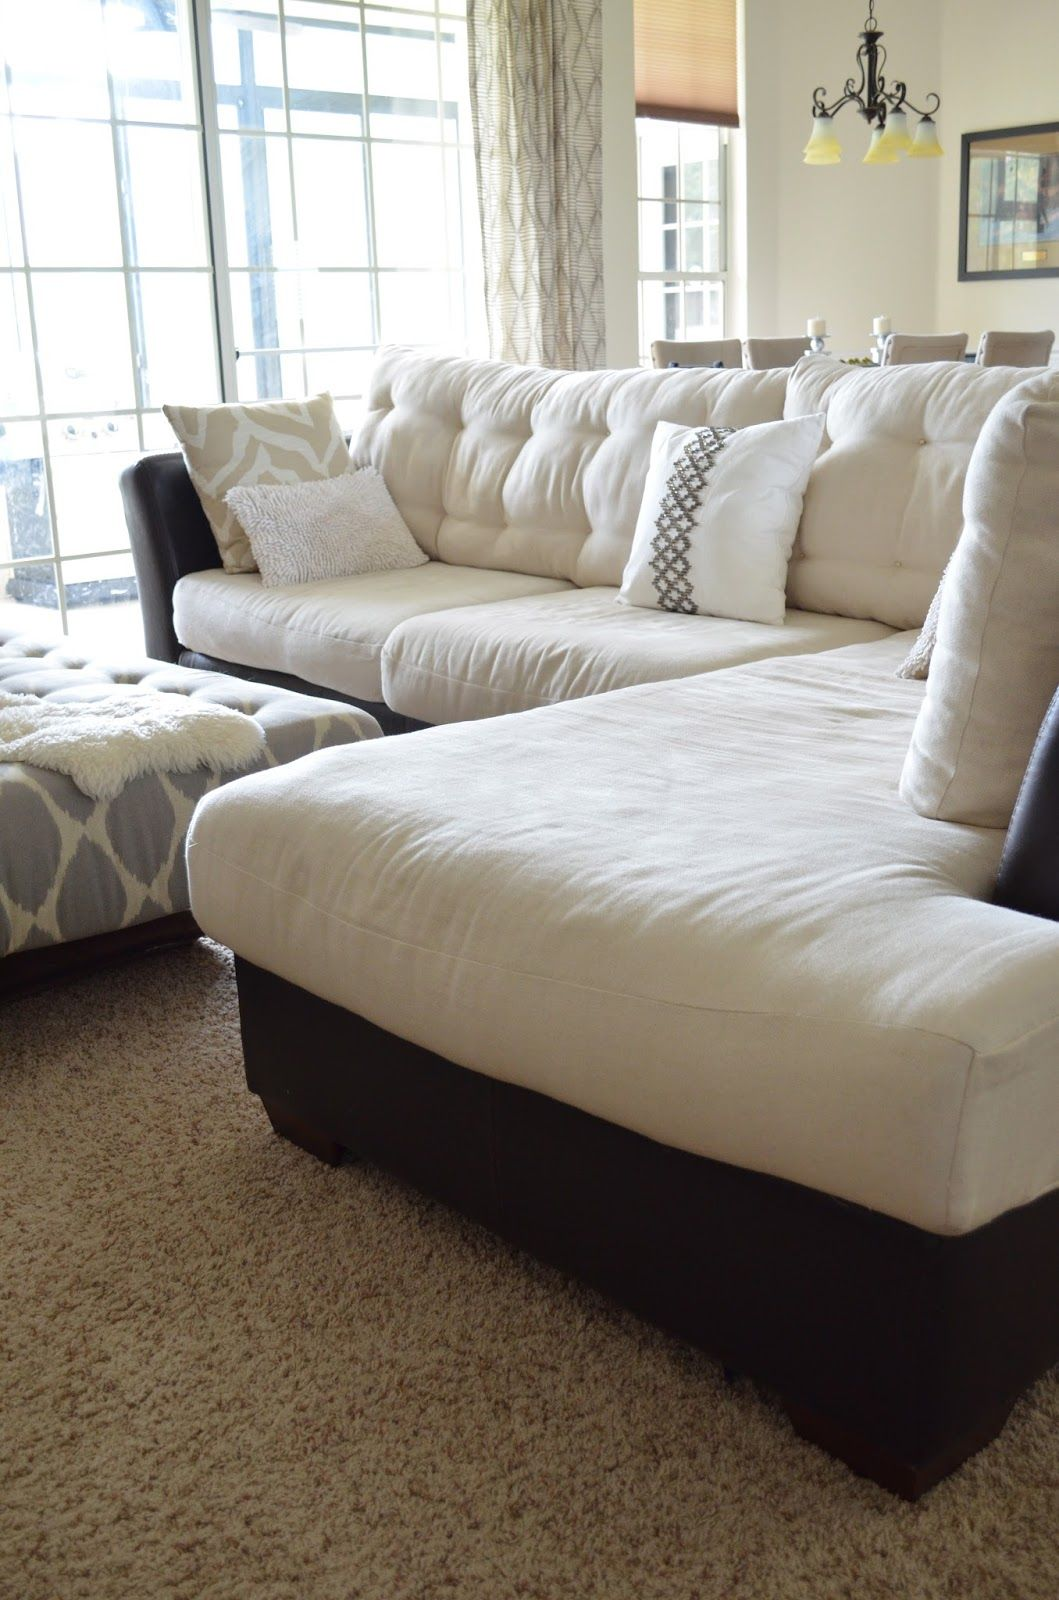 Upholstery Couch Diy Diy Reupholster Couch Cushions Easy Craft Ideas